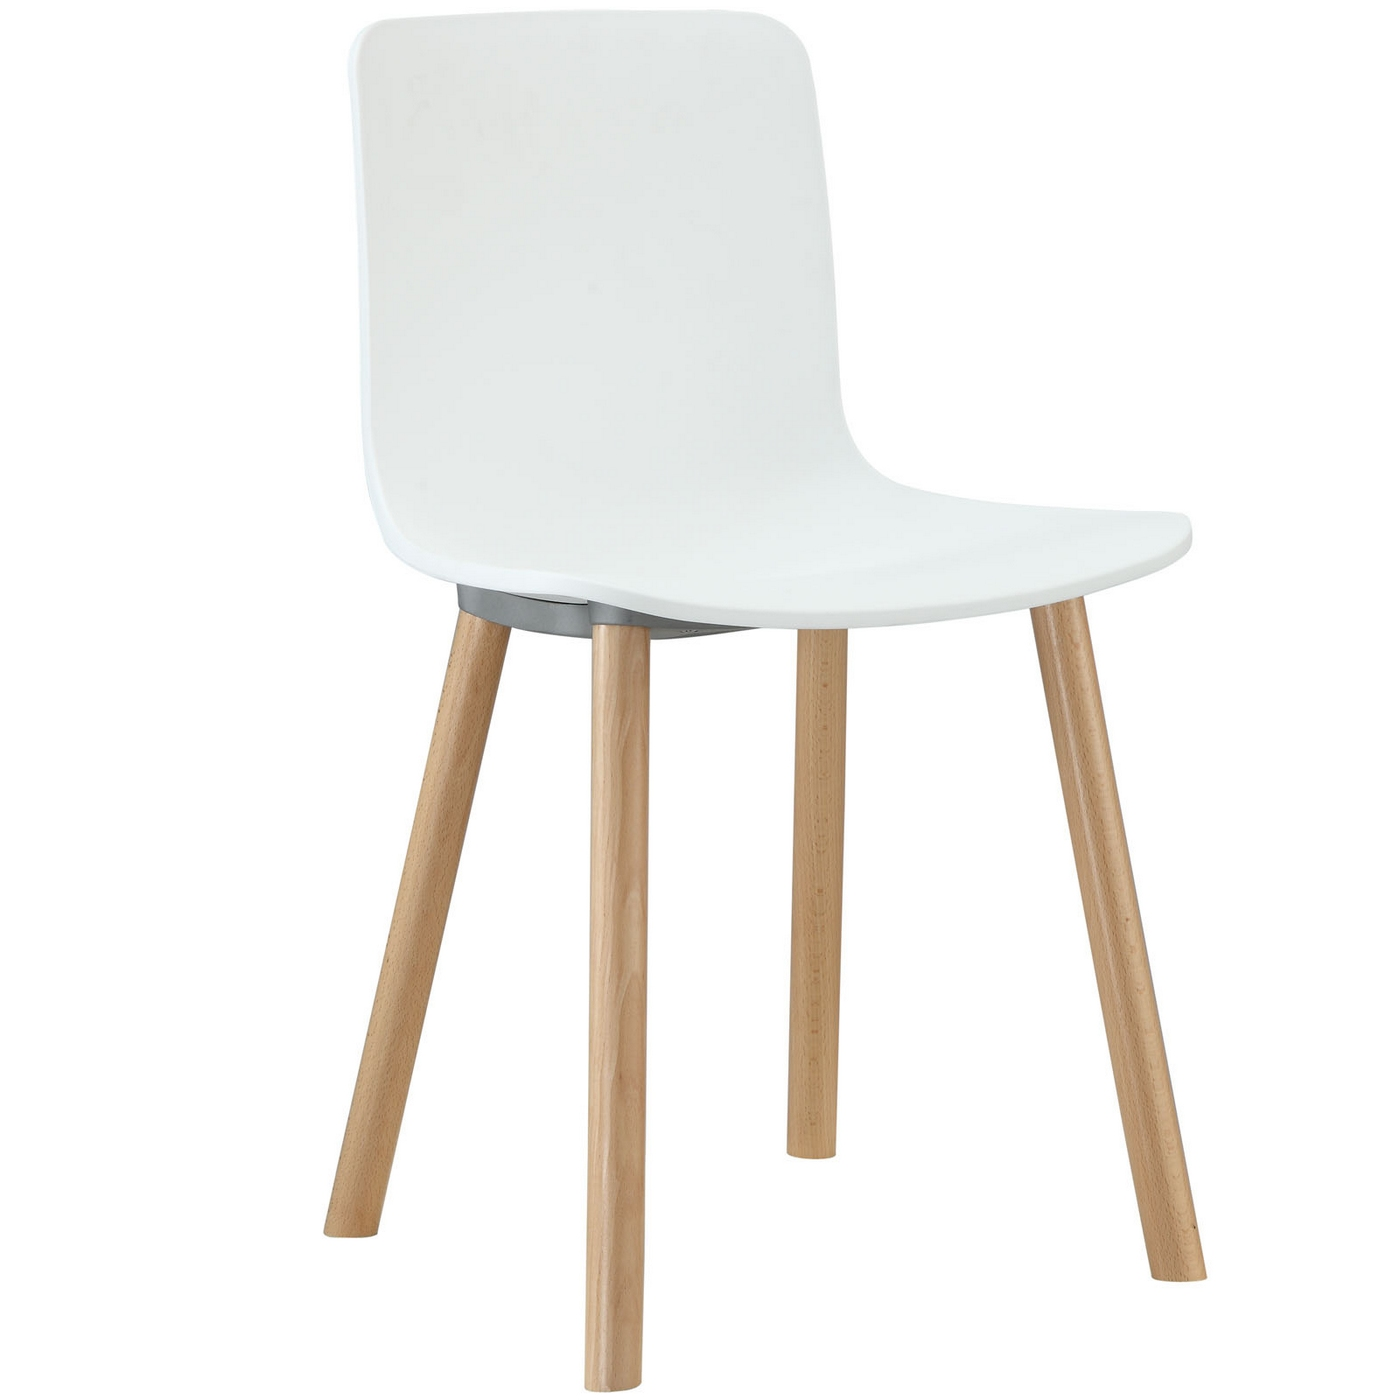 Sprung modern molded plastic side chair with wood dowel for Plastic modern chairs